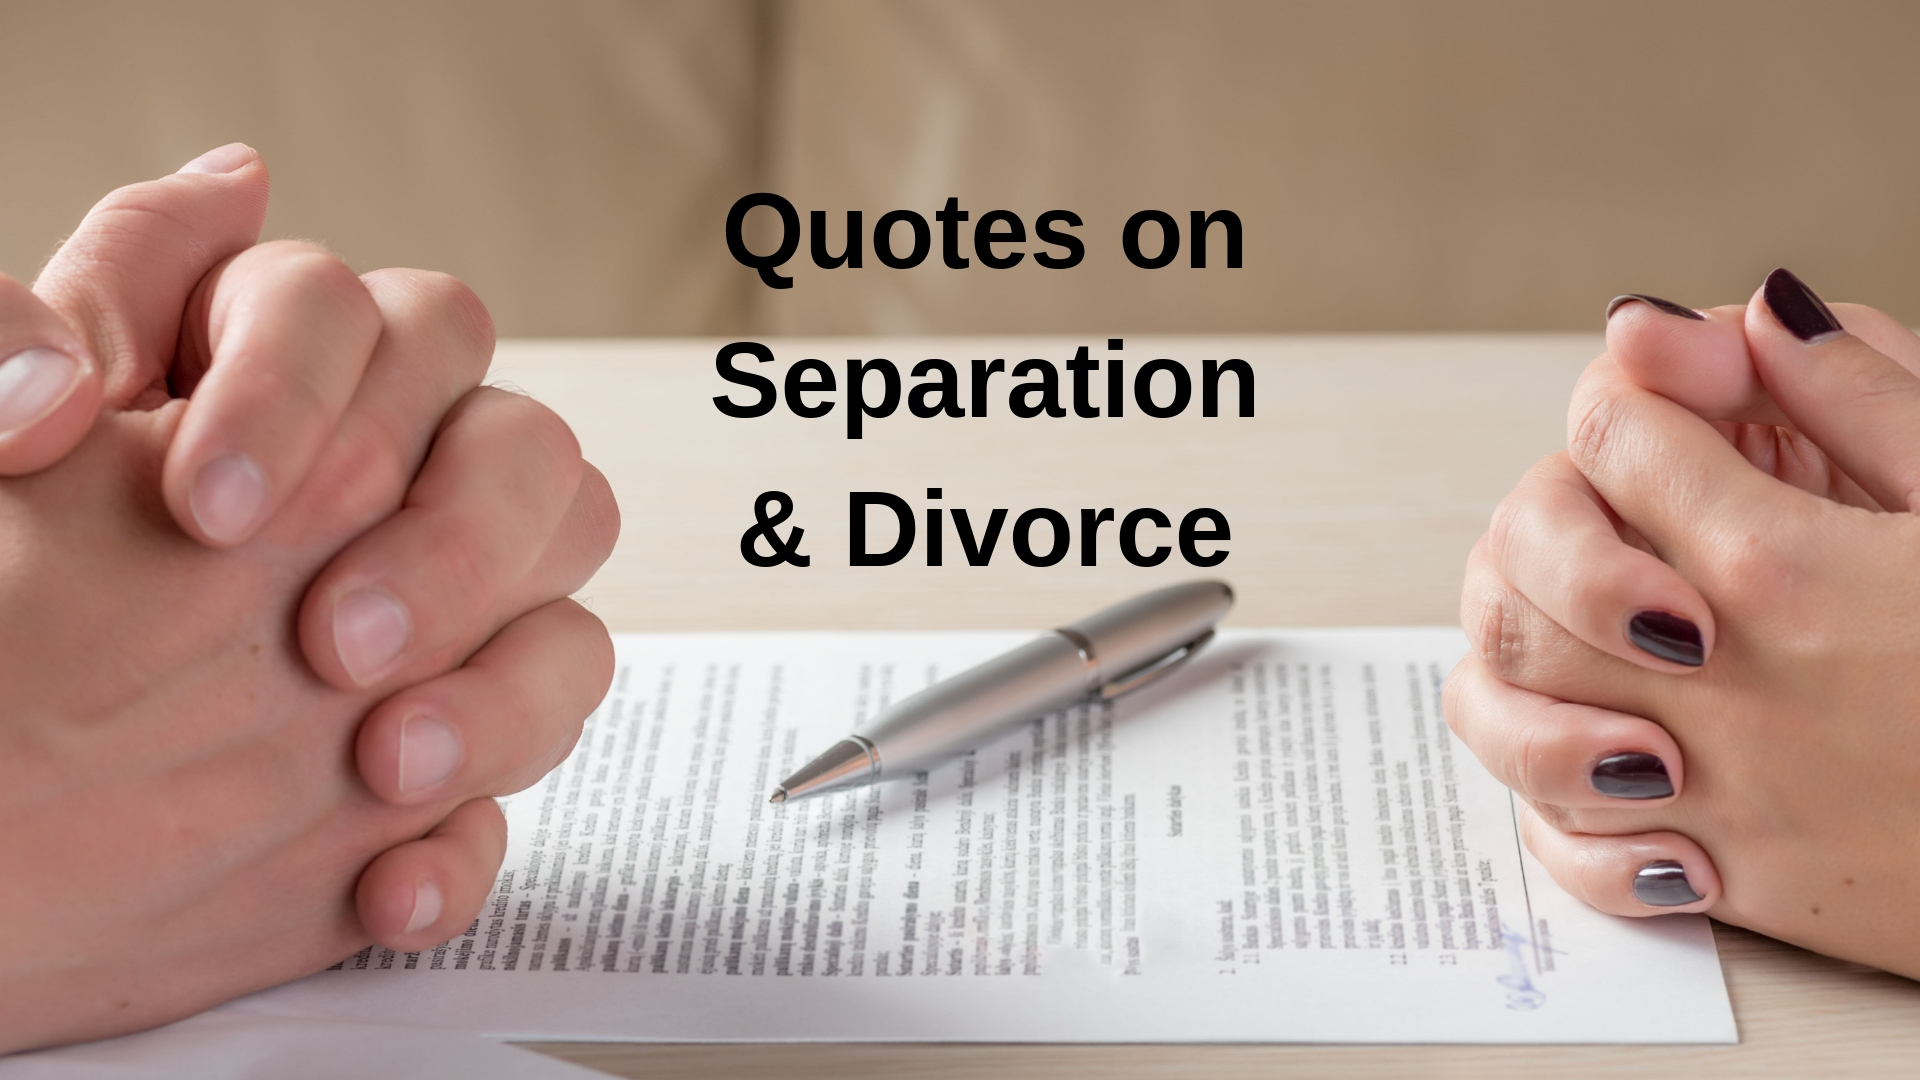 Quotes on Separation & Divorce - Adobe Stock - Canva